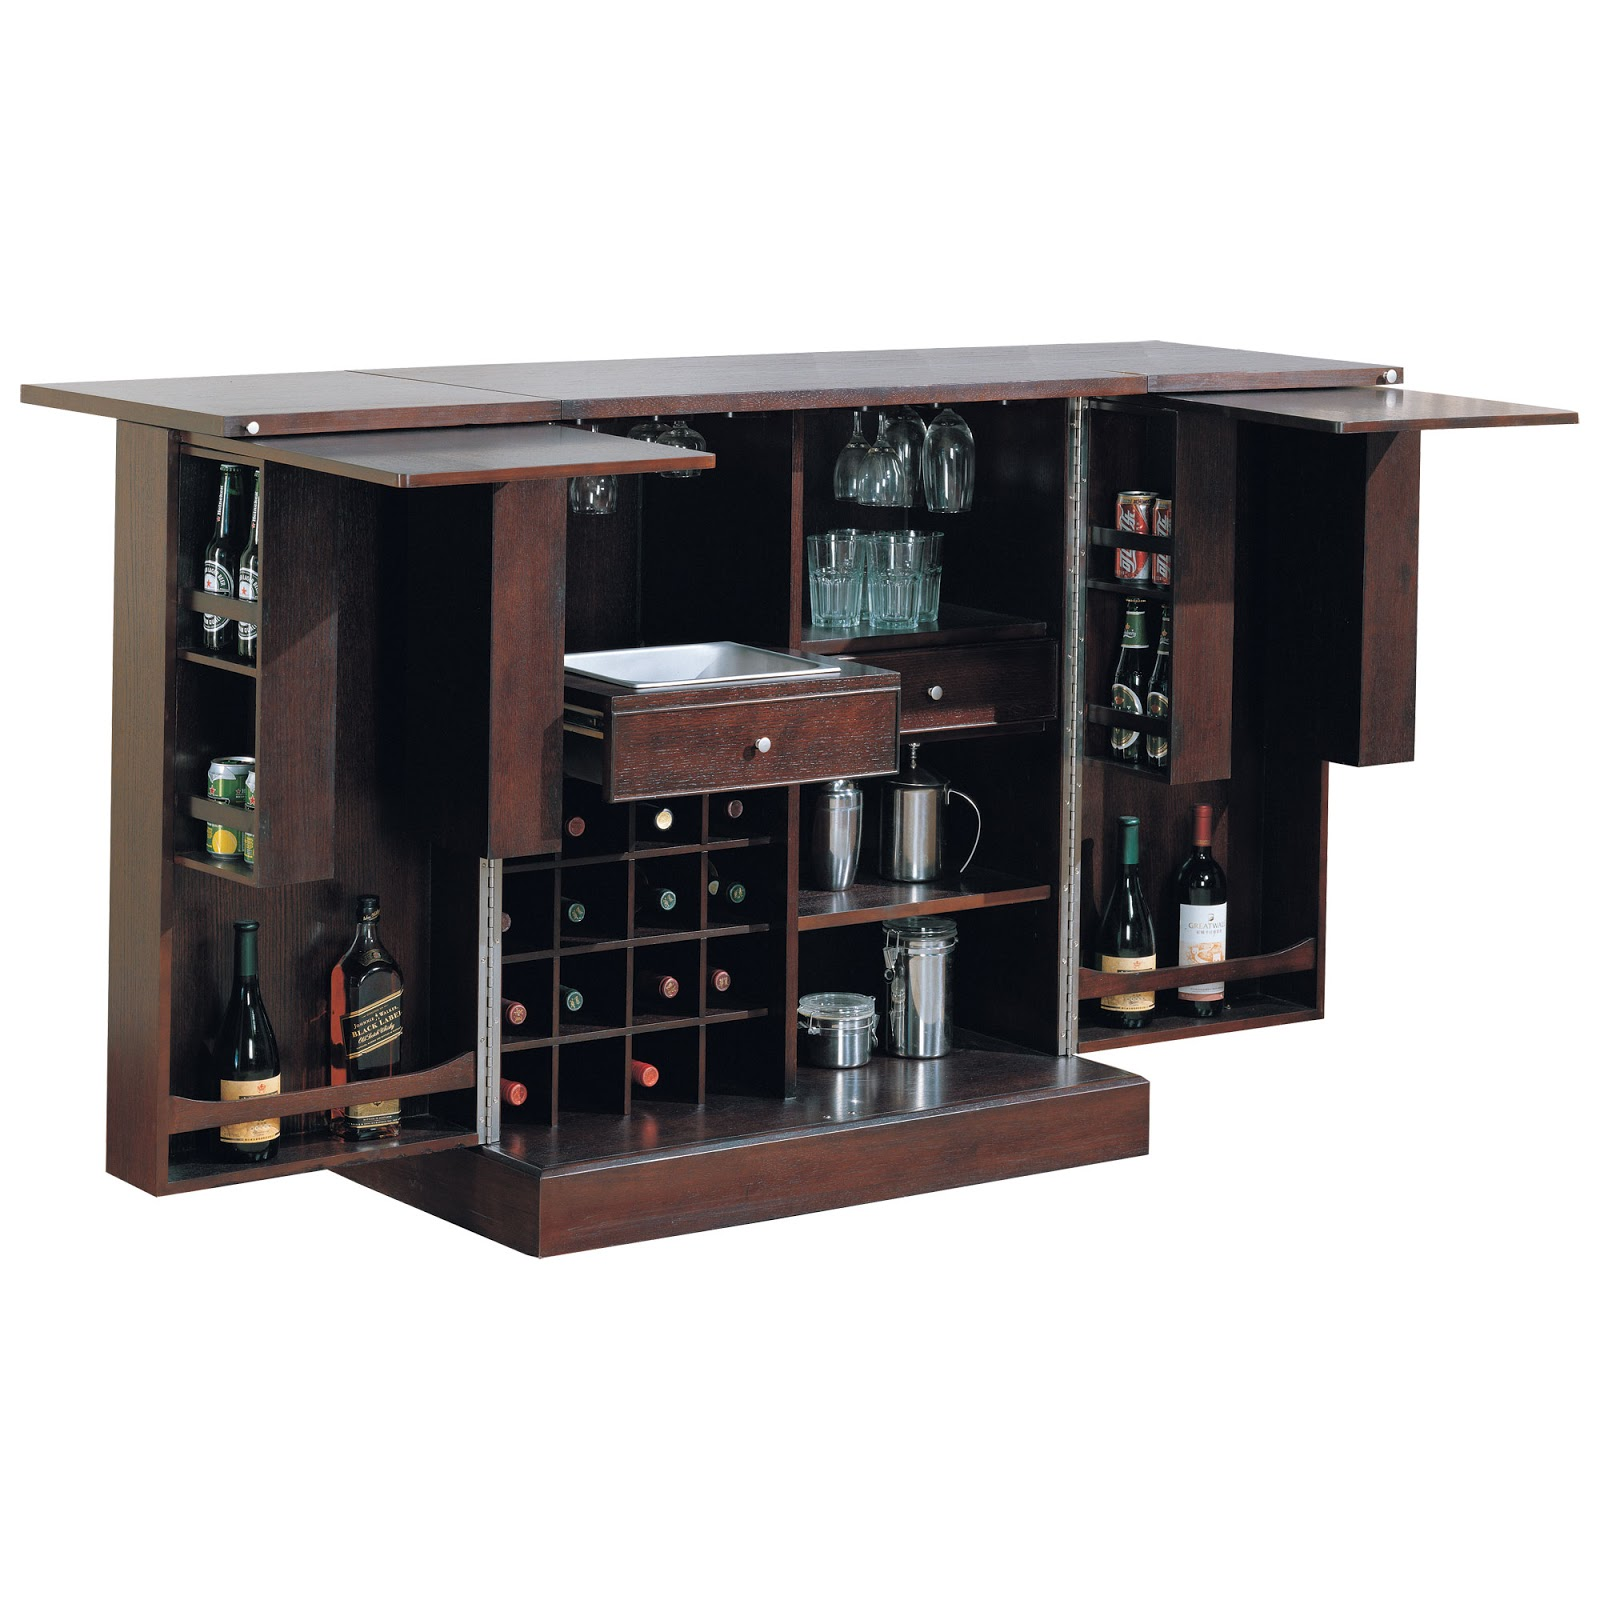 Trendy Bar Ideas | Bill House Plans